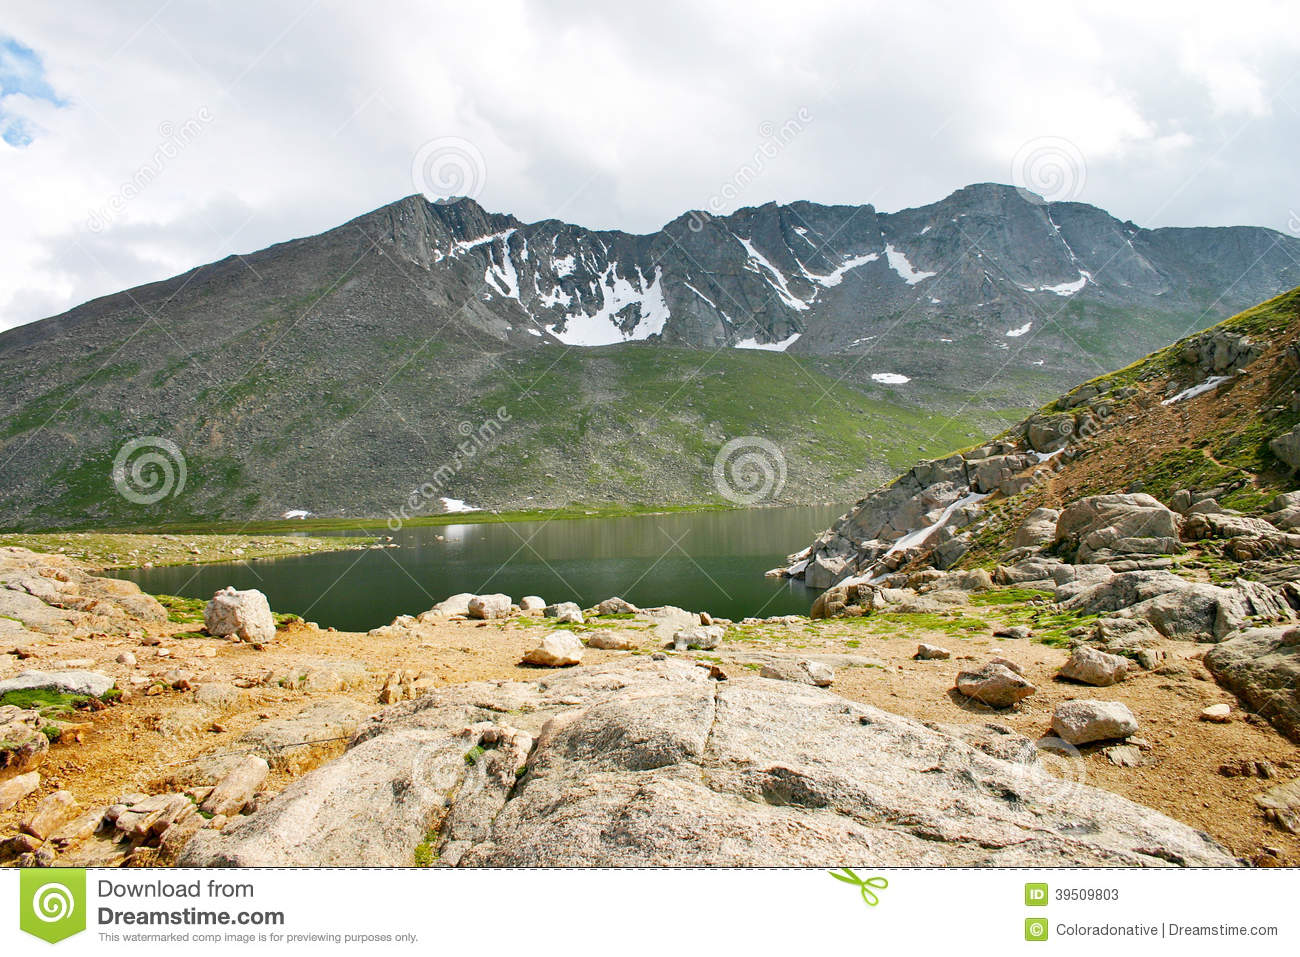 Alpine Lake in Colorado